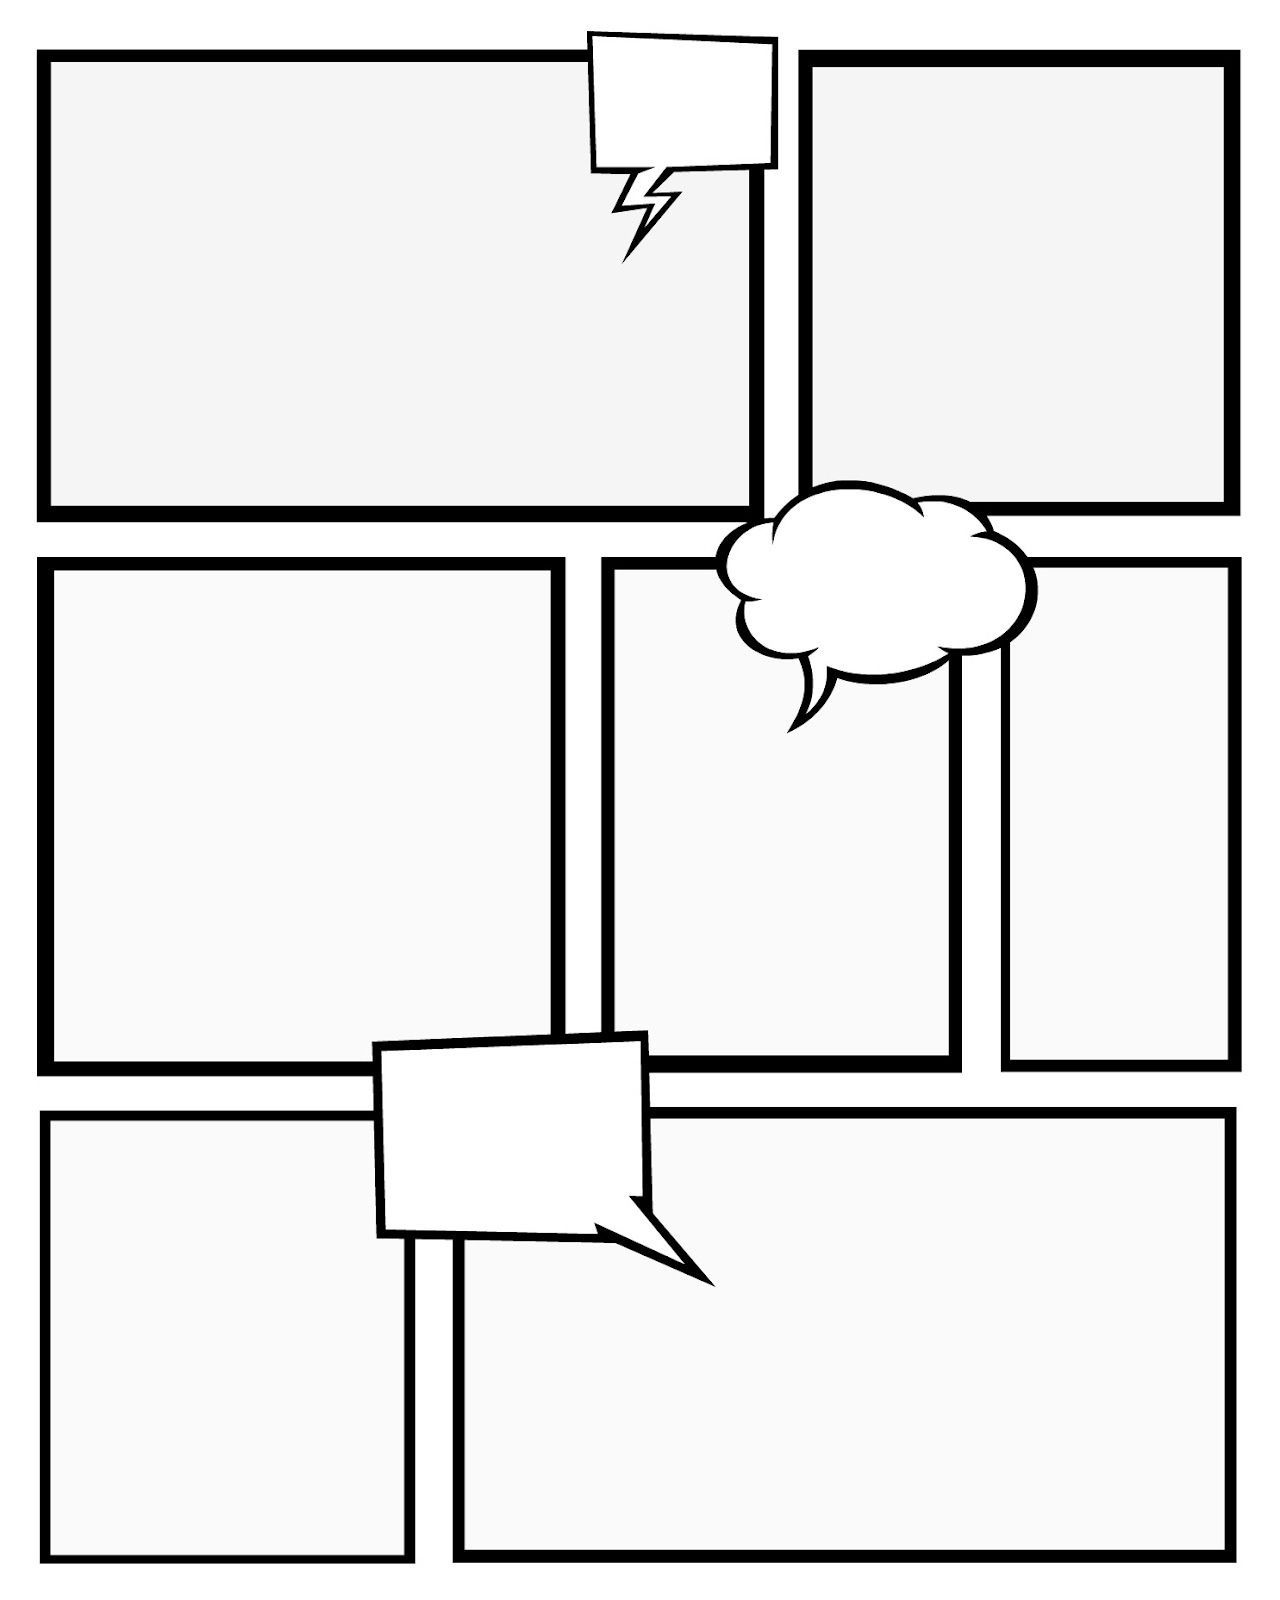 008 Top Comic Strip Layout For Word Image  Book Script Template Microsoft DocFull